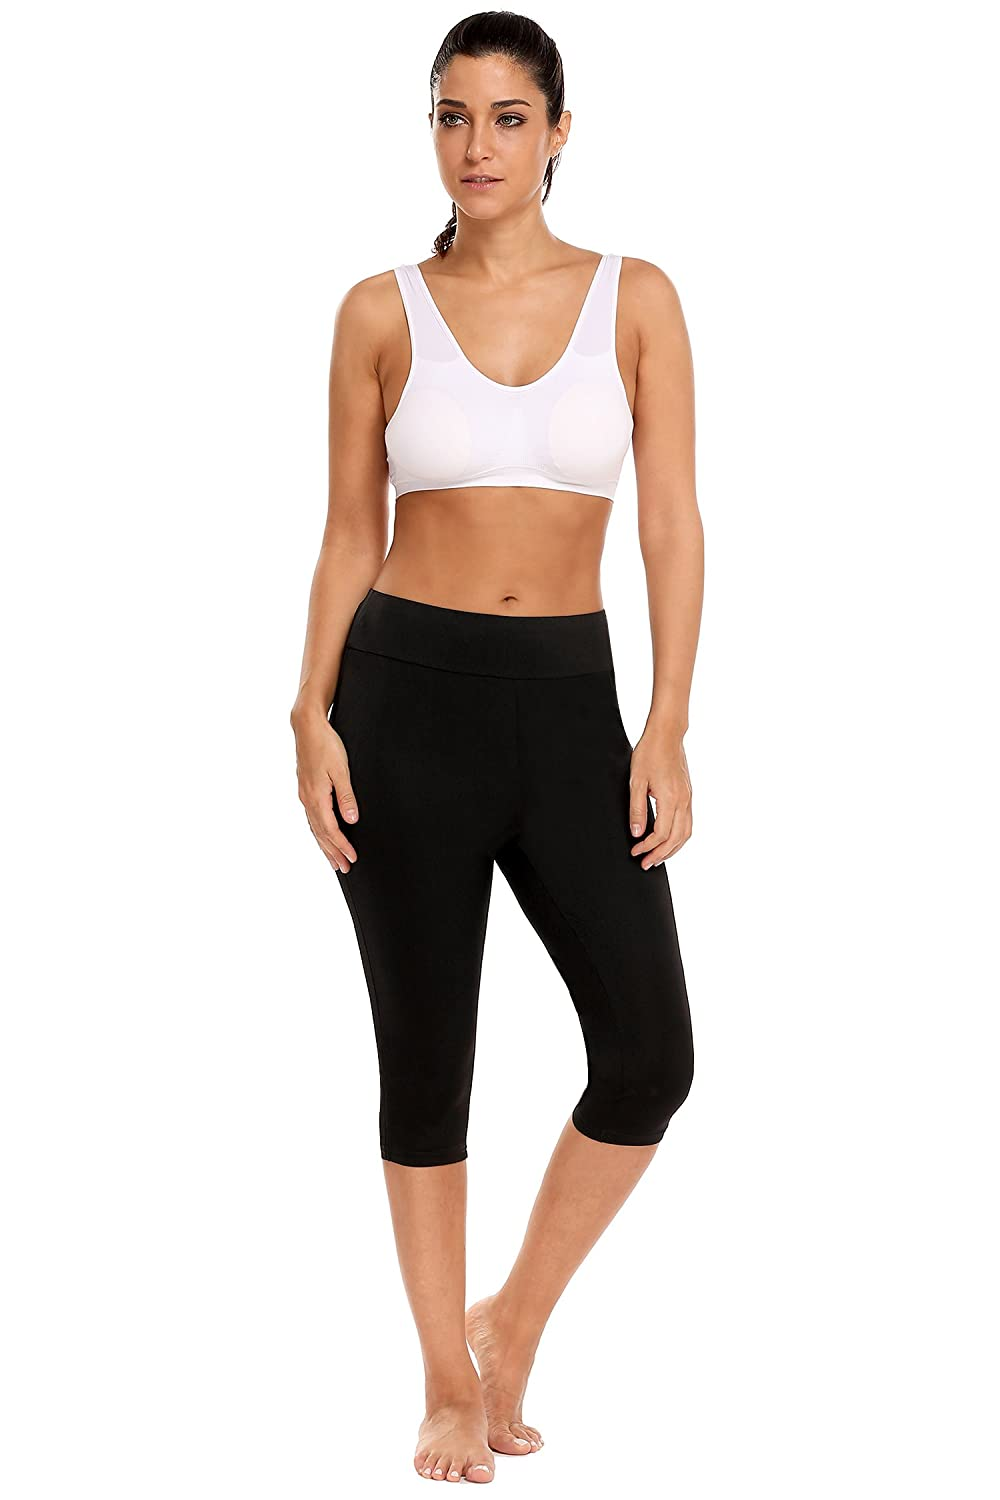 7b4b2c5ac59b0 BODY GLOVE BREATHE WORK IT CAPRI:The sports tights adopted a breathable  base layer that keeps you cool and enhance blood circulation,the material  is more ...